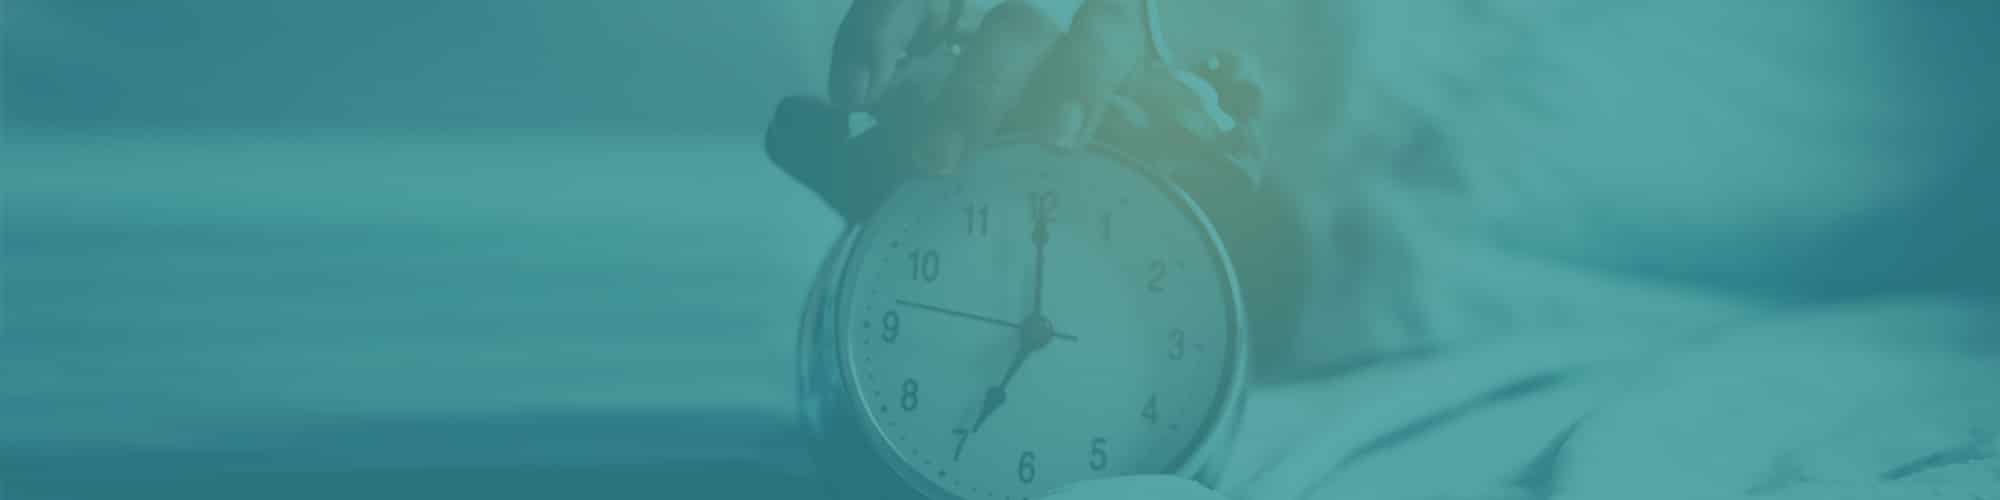 Why the seasonal clock change is less innocent than you might think